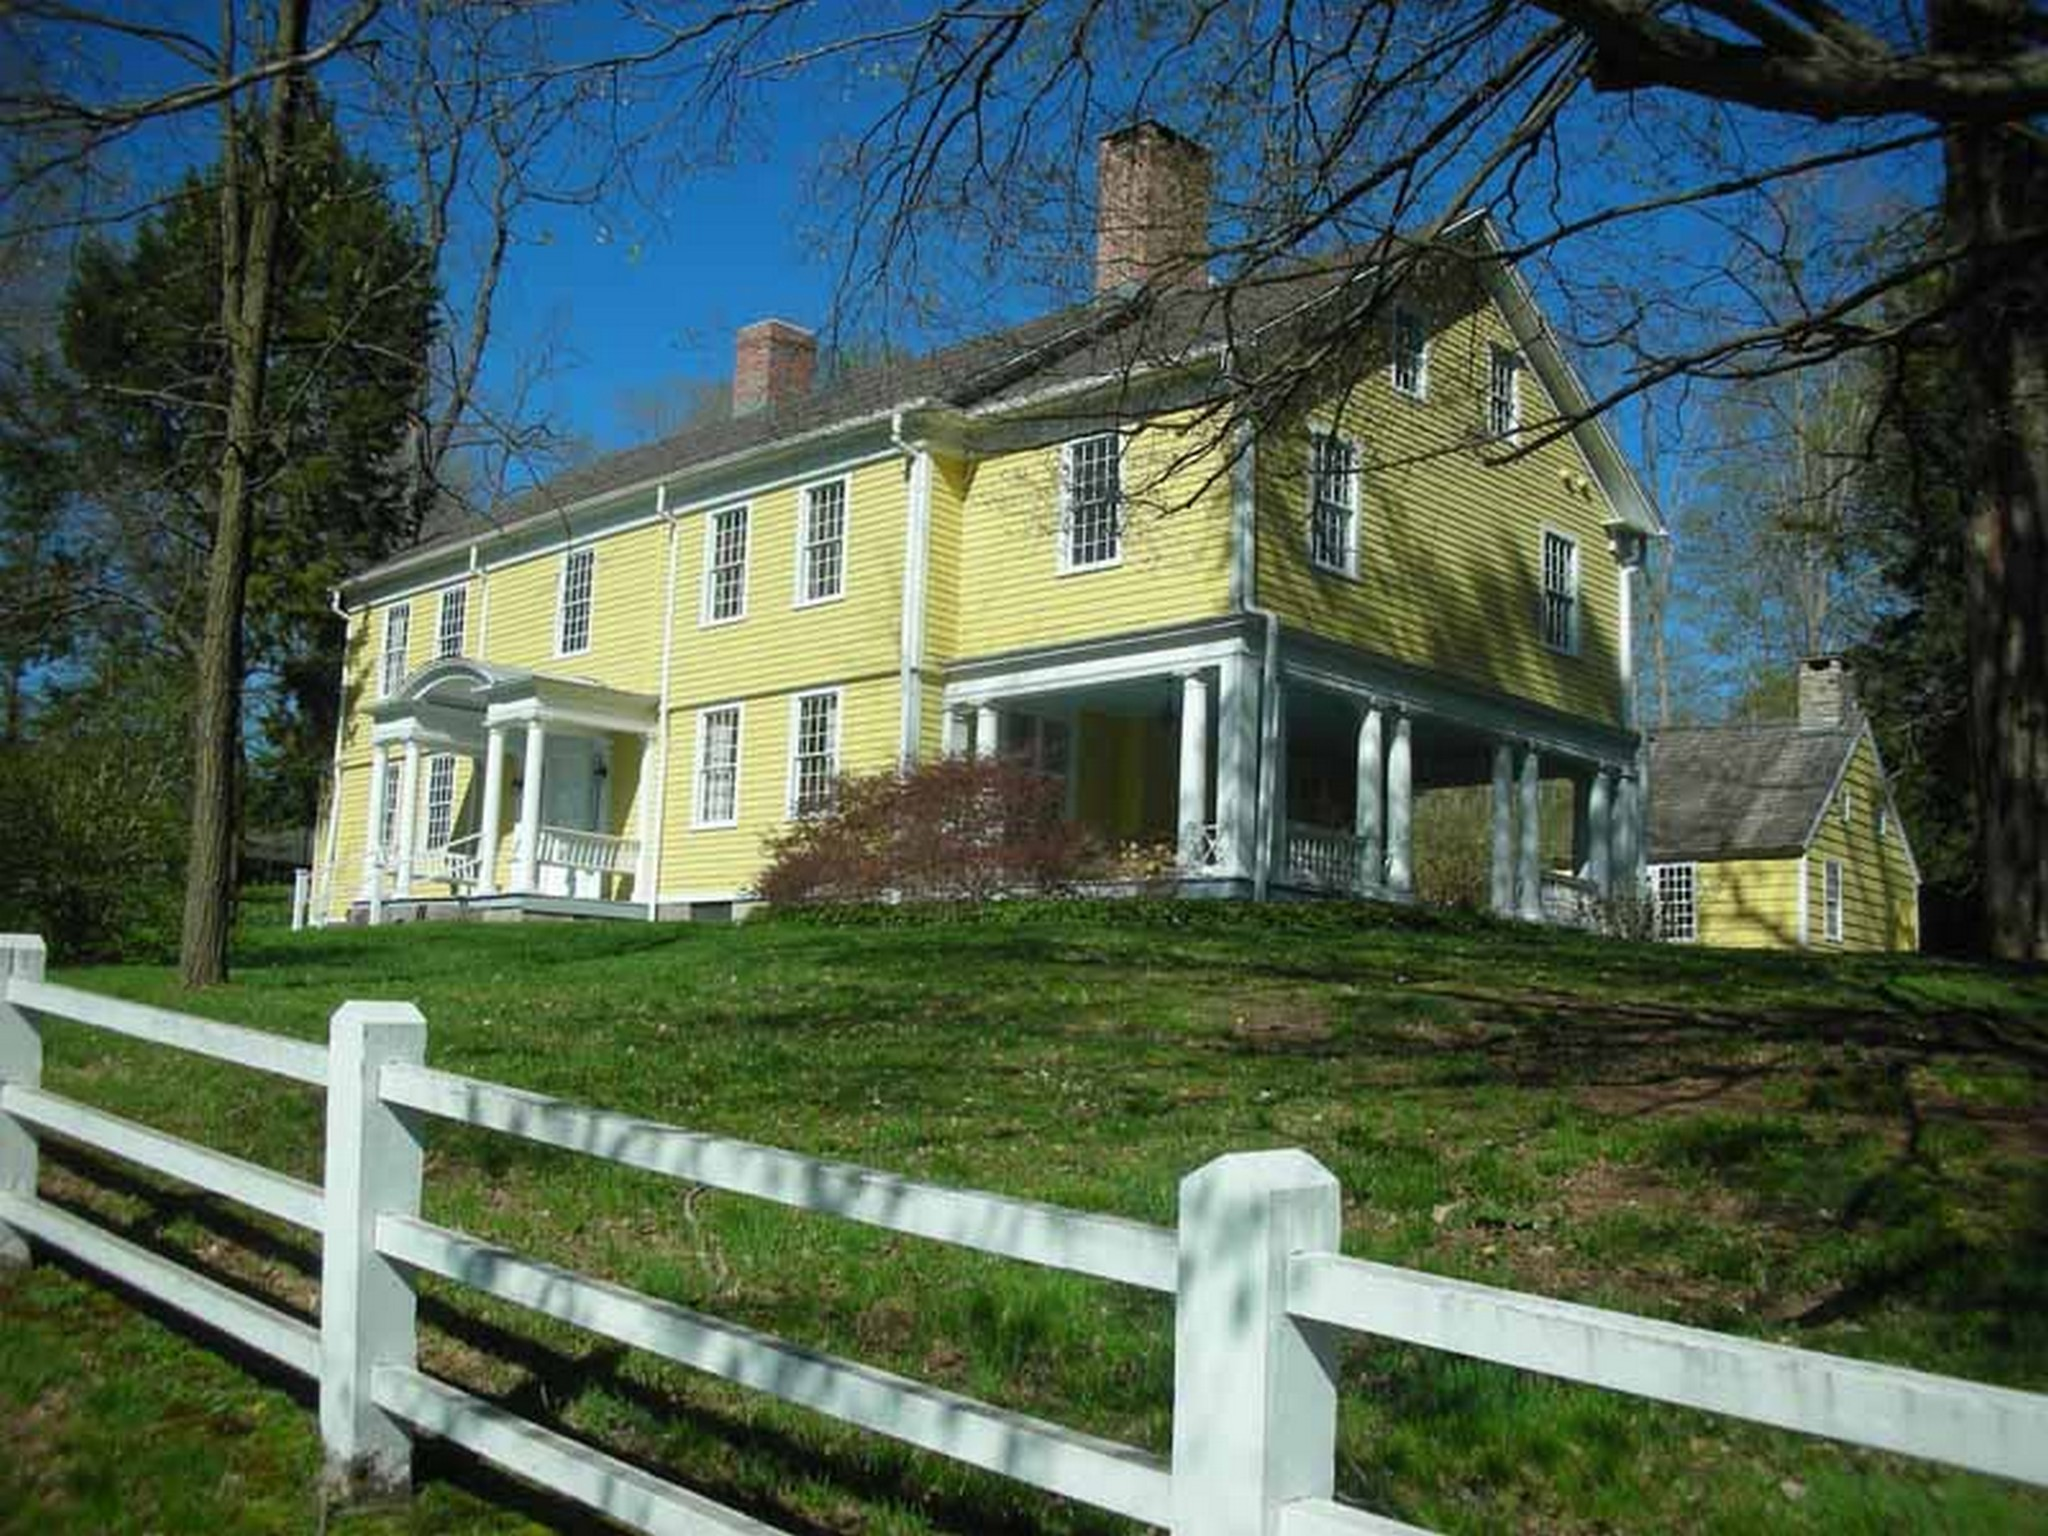 Single Family Home for Sale at Historic District Colonial 881 Main St Woodbury, Connecticut 06798 United States